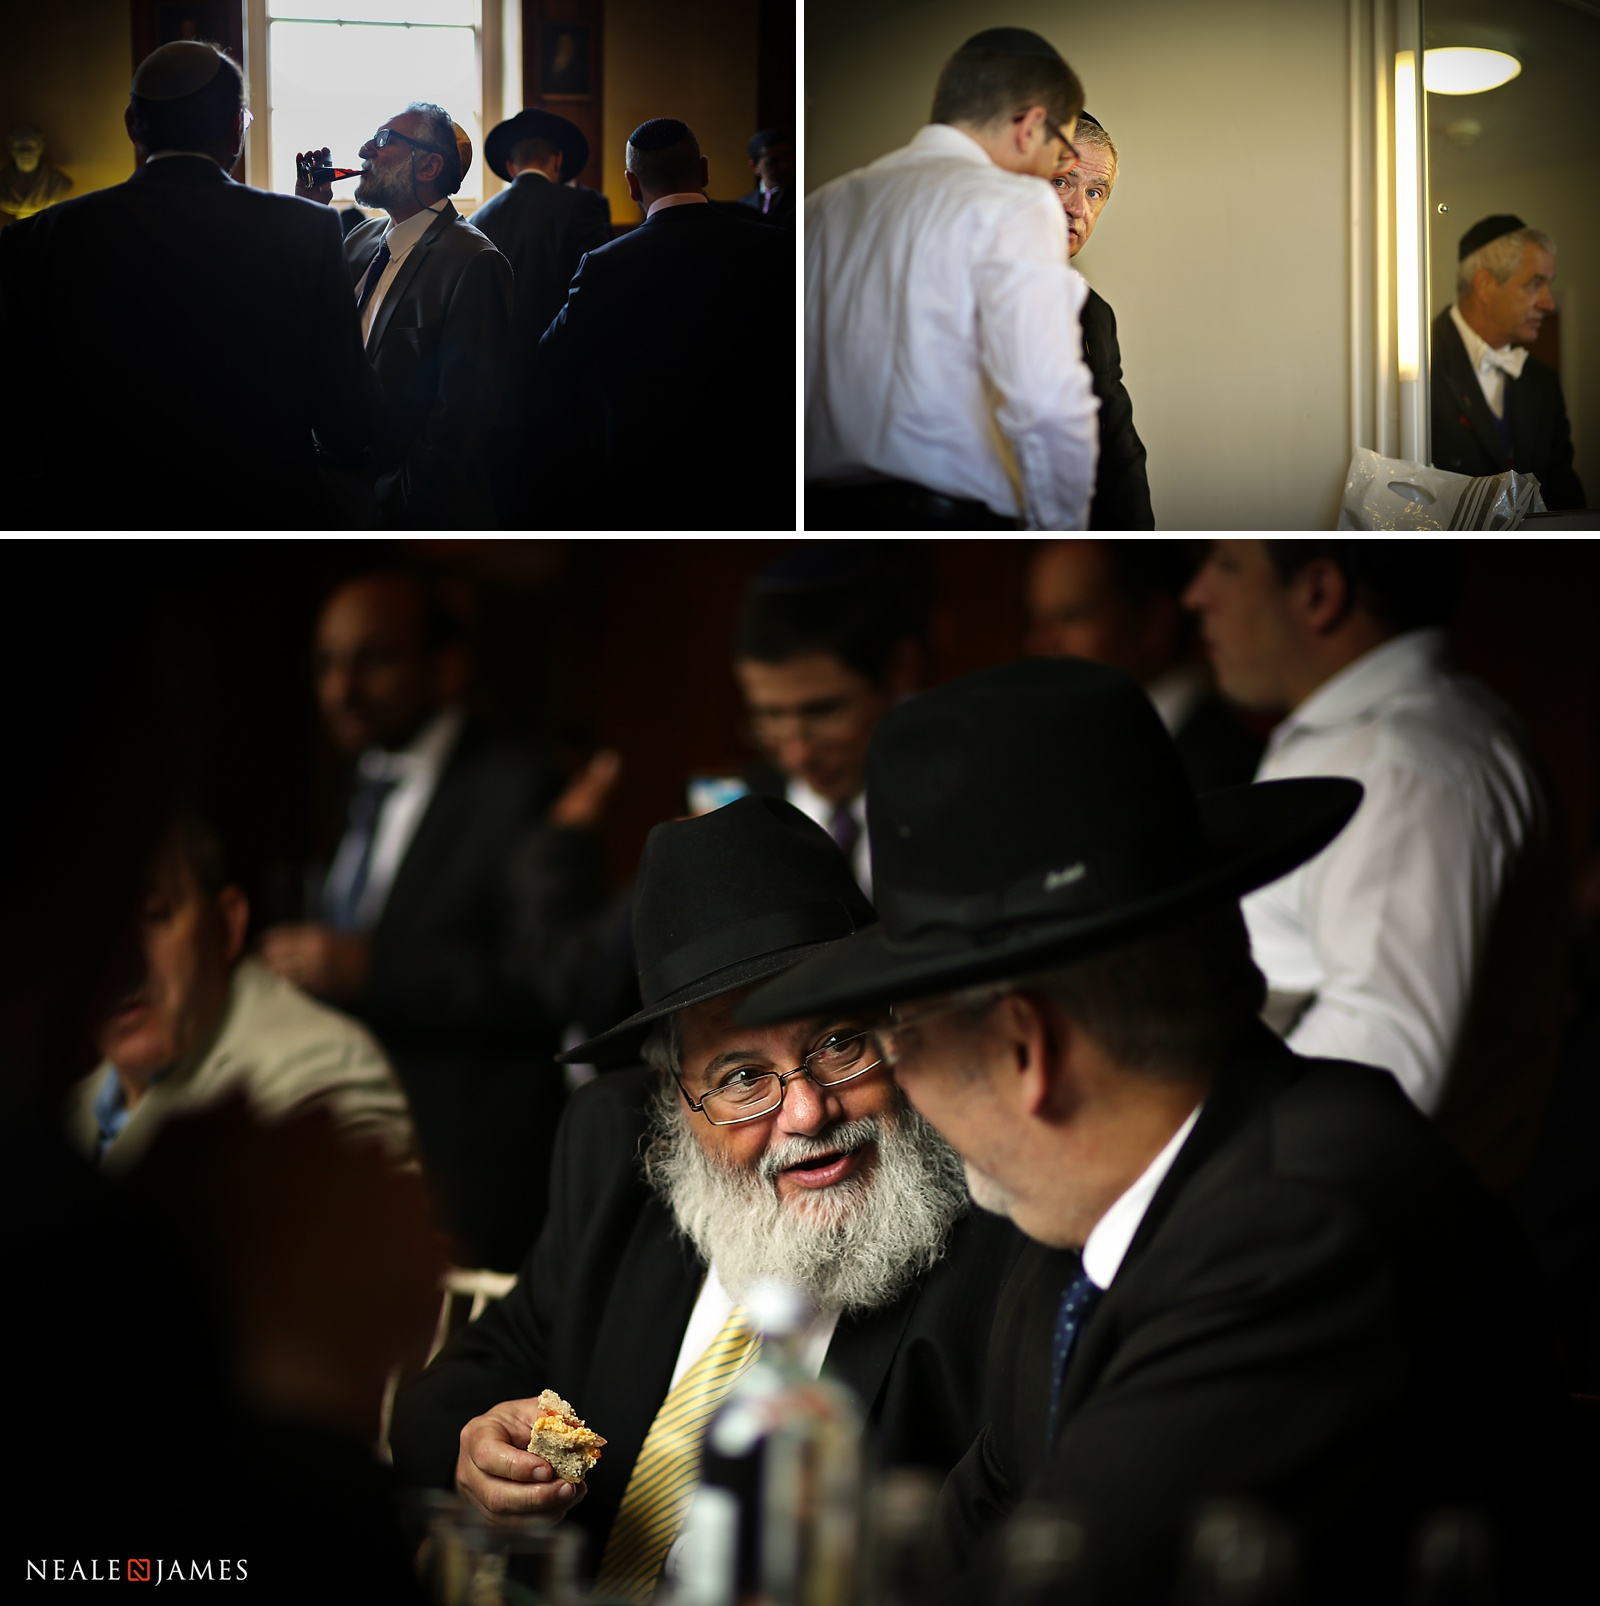 Preparations for Jewish wedding in this colour picture